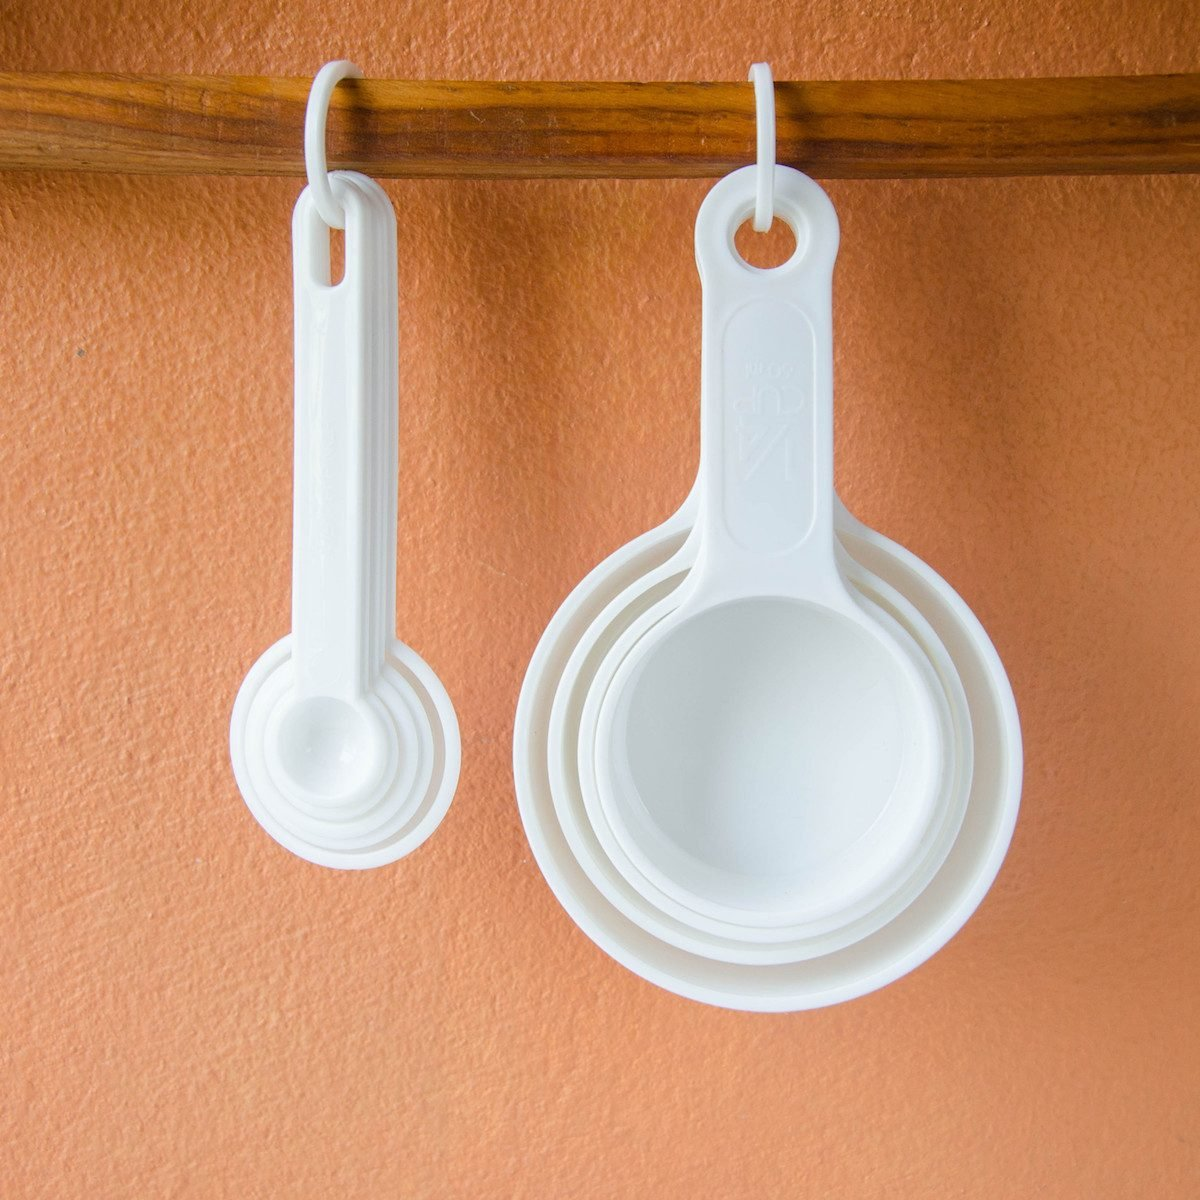 hanging up measuring spoons and cups